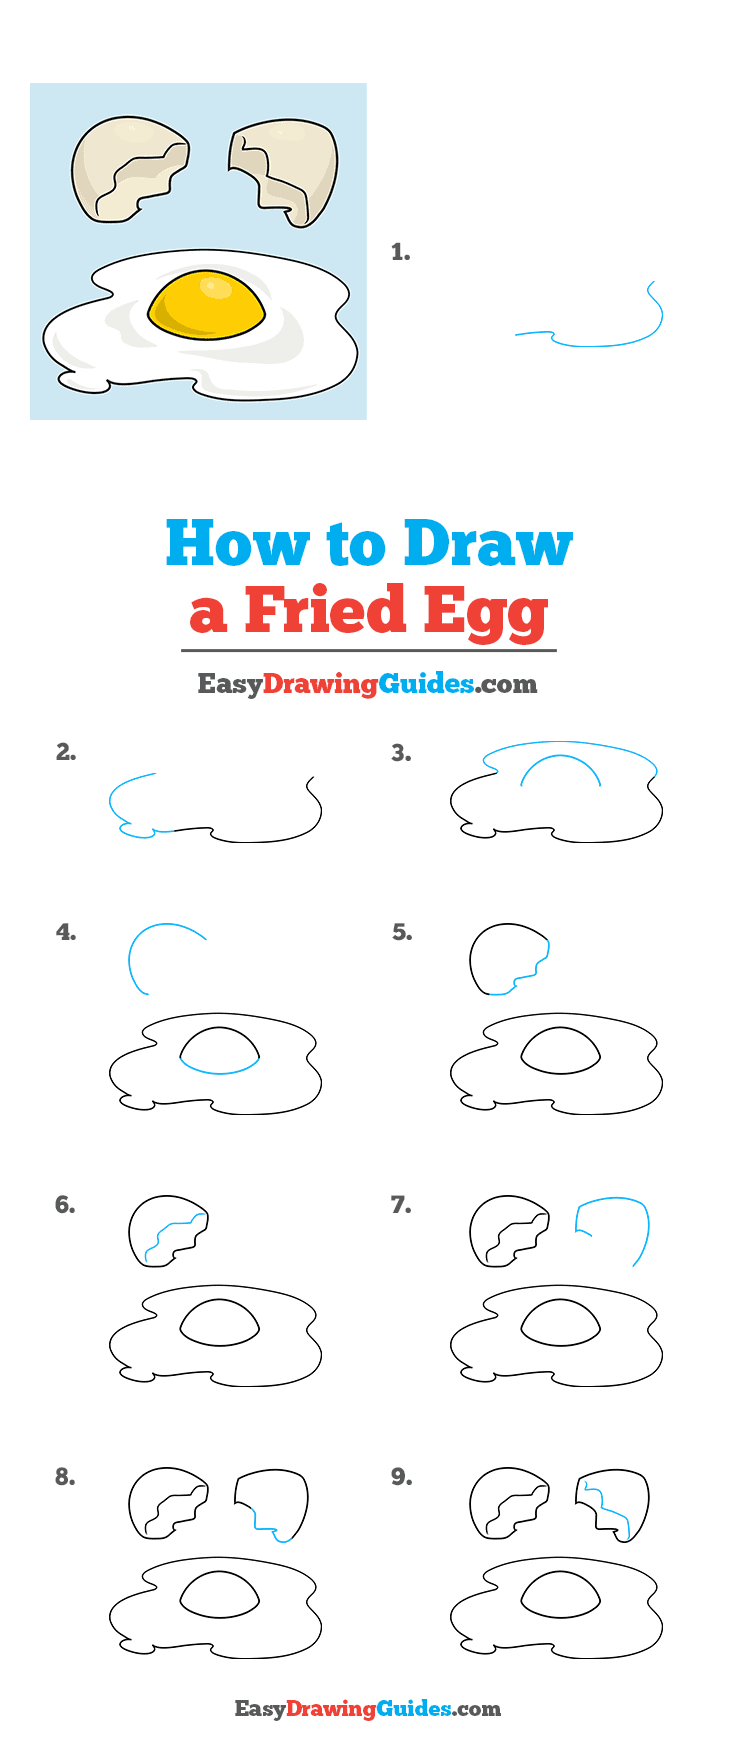 How to Draw a Fried Egg Step by Step Tutorial Image